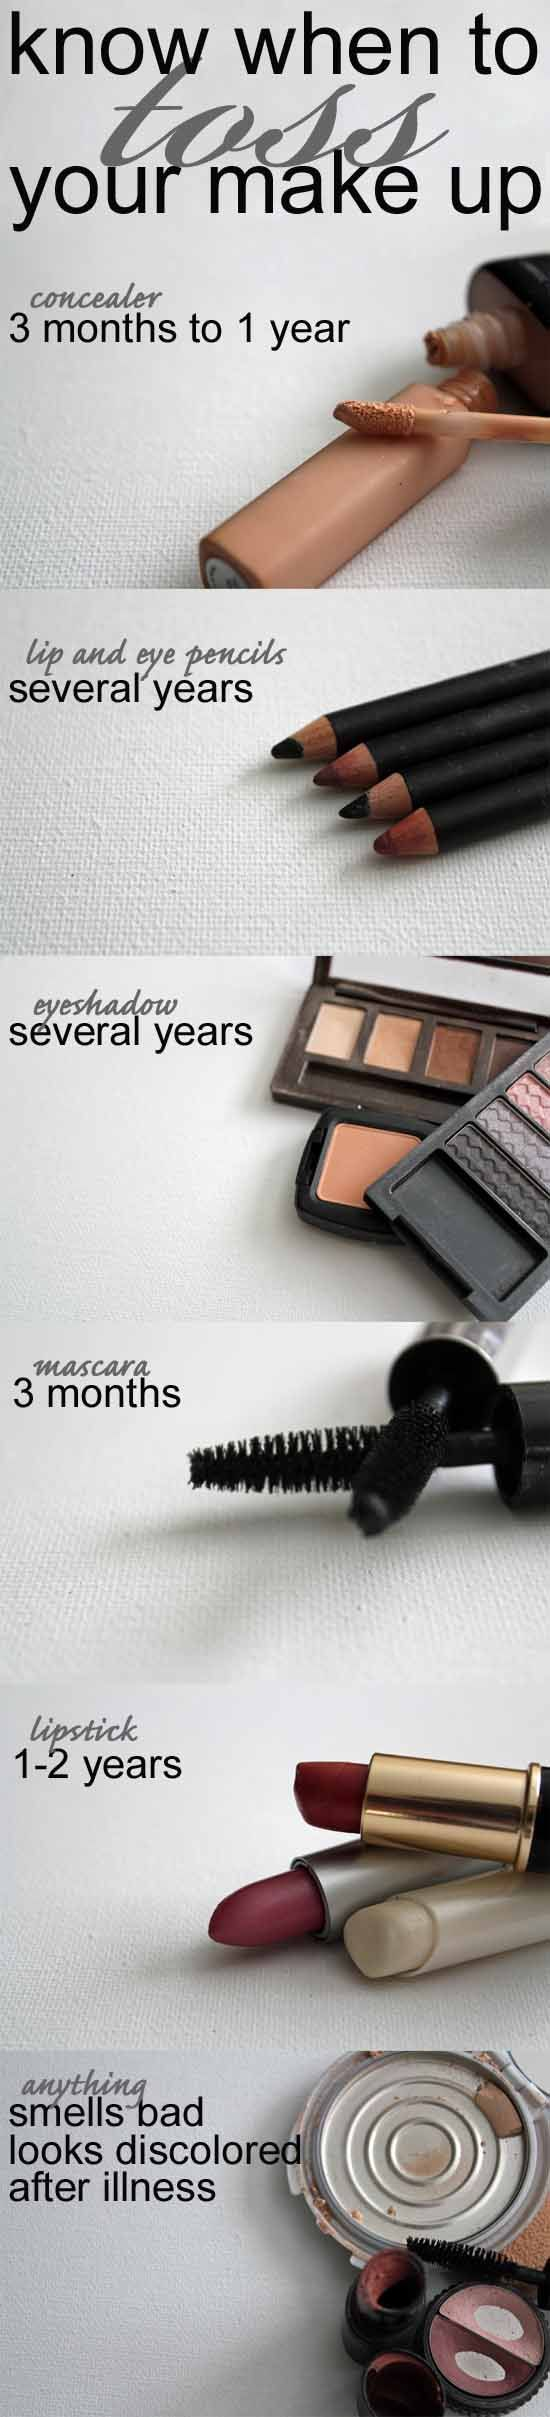 Know when to toss your make up: when does makeup go bad